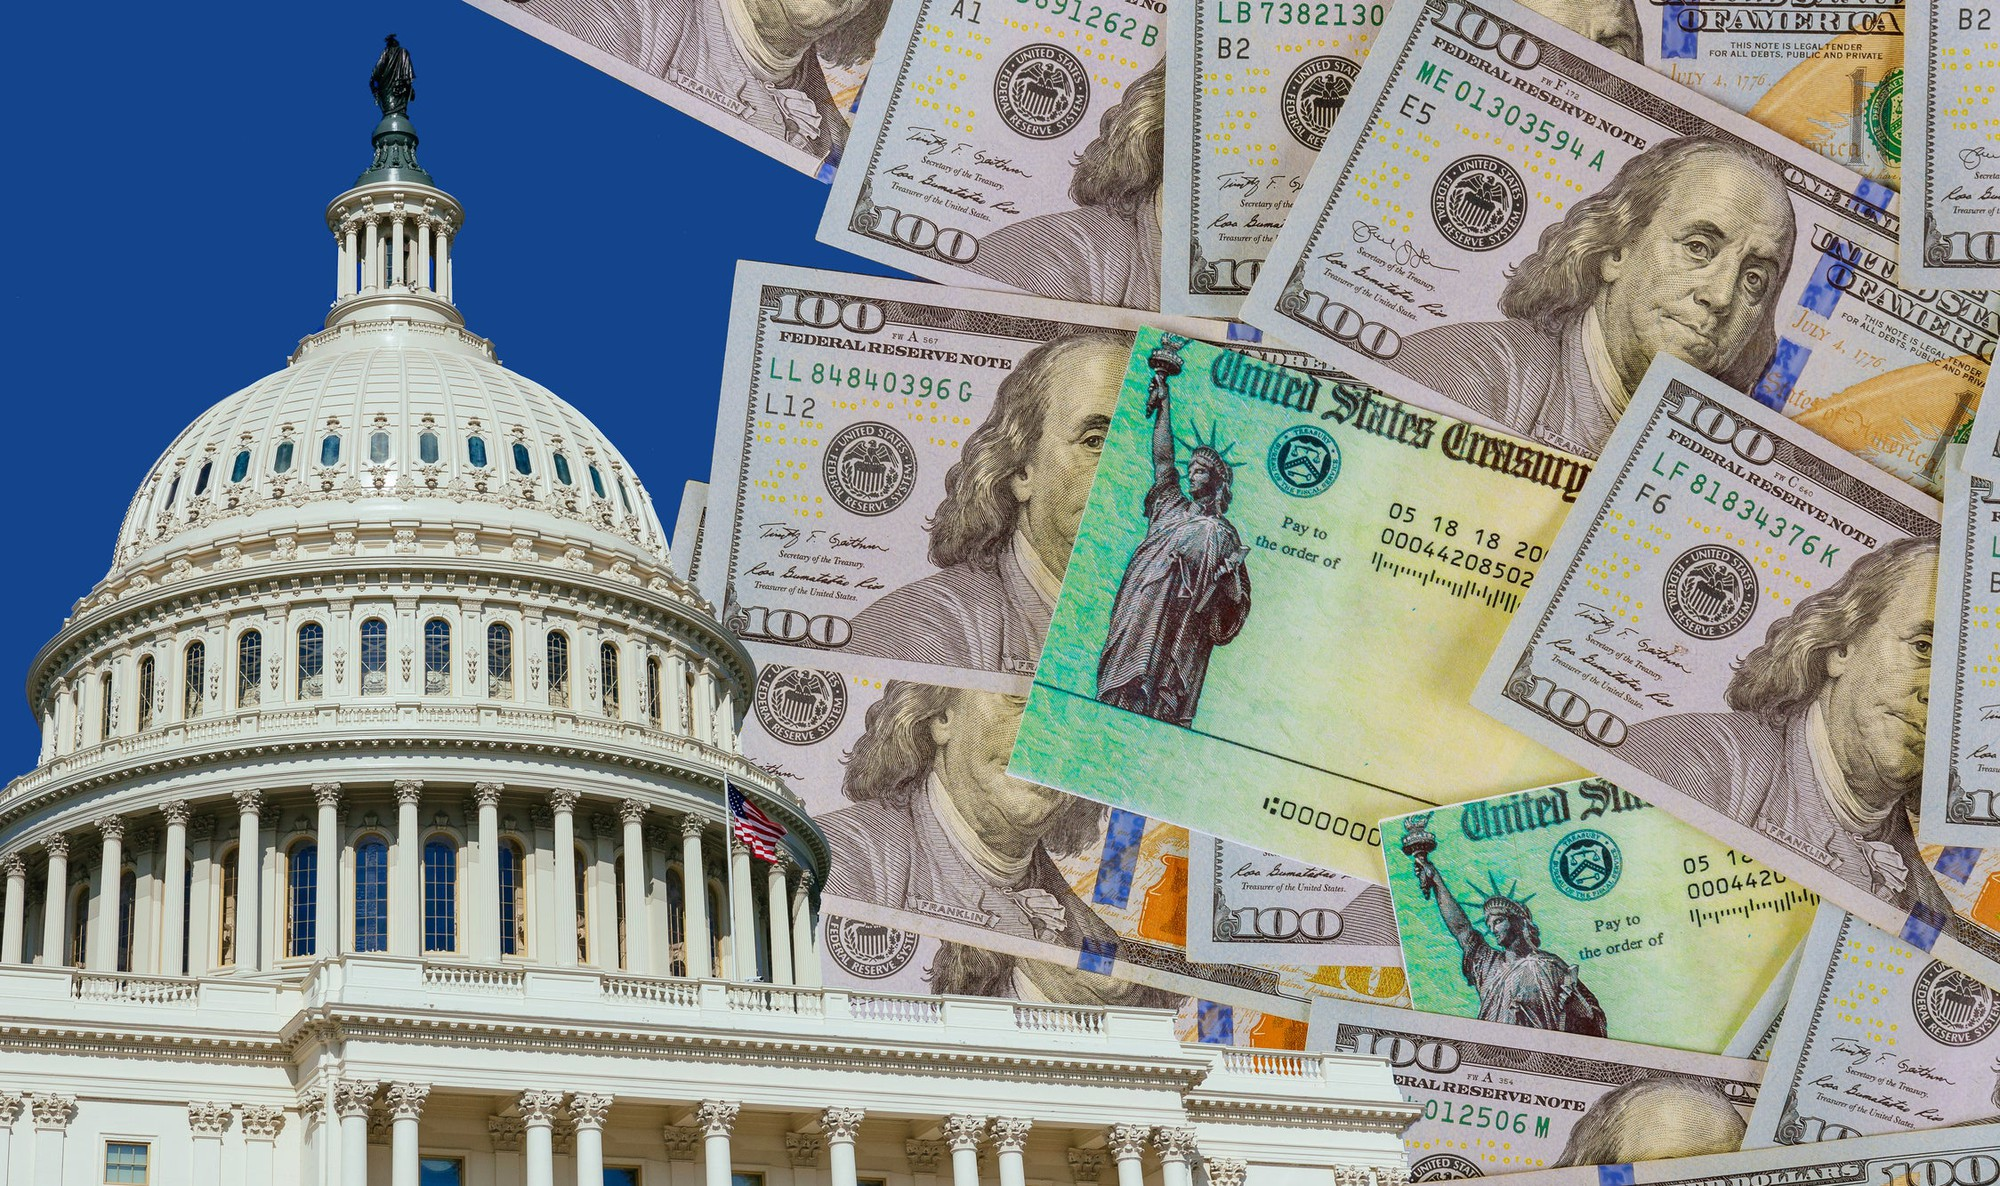 A messy pile of one hundred dollar bills and a U.S. Treasury check next to the Capitol building.